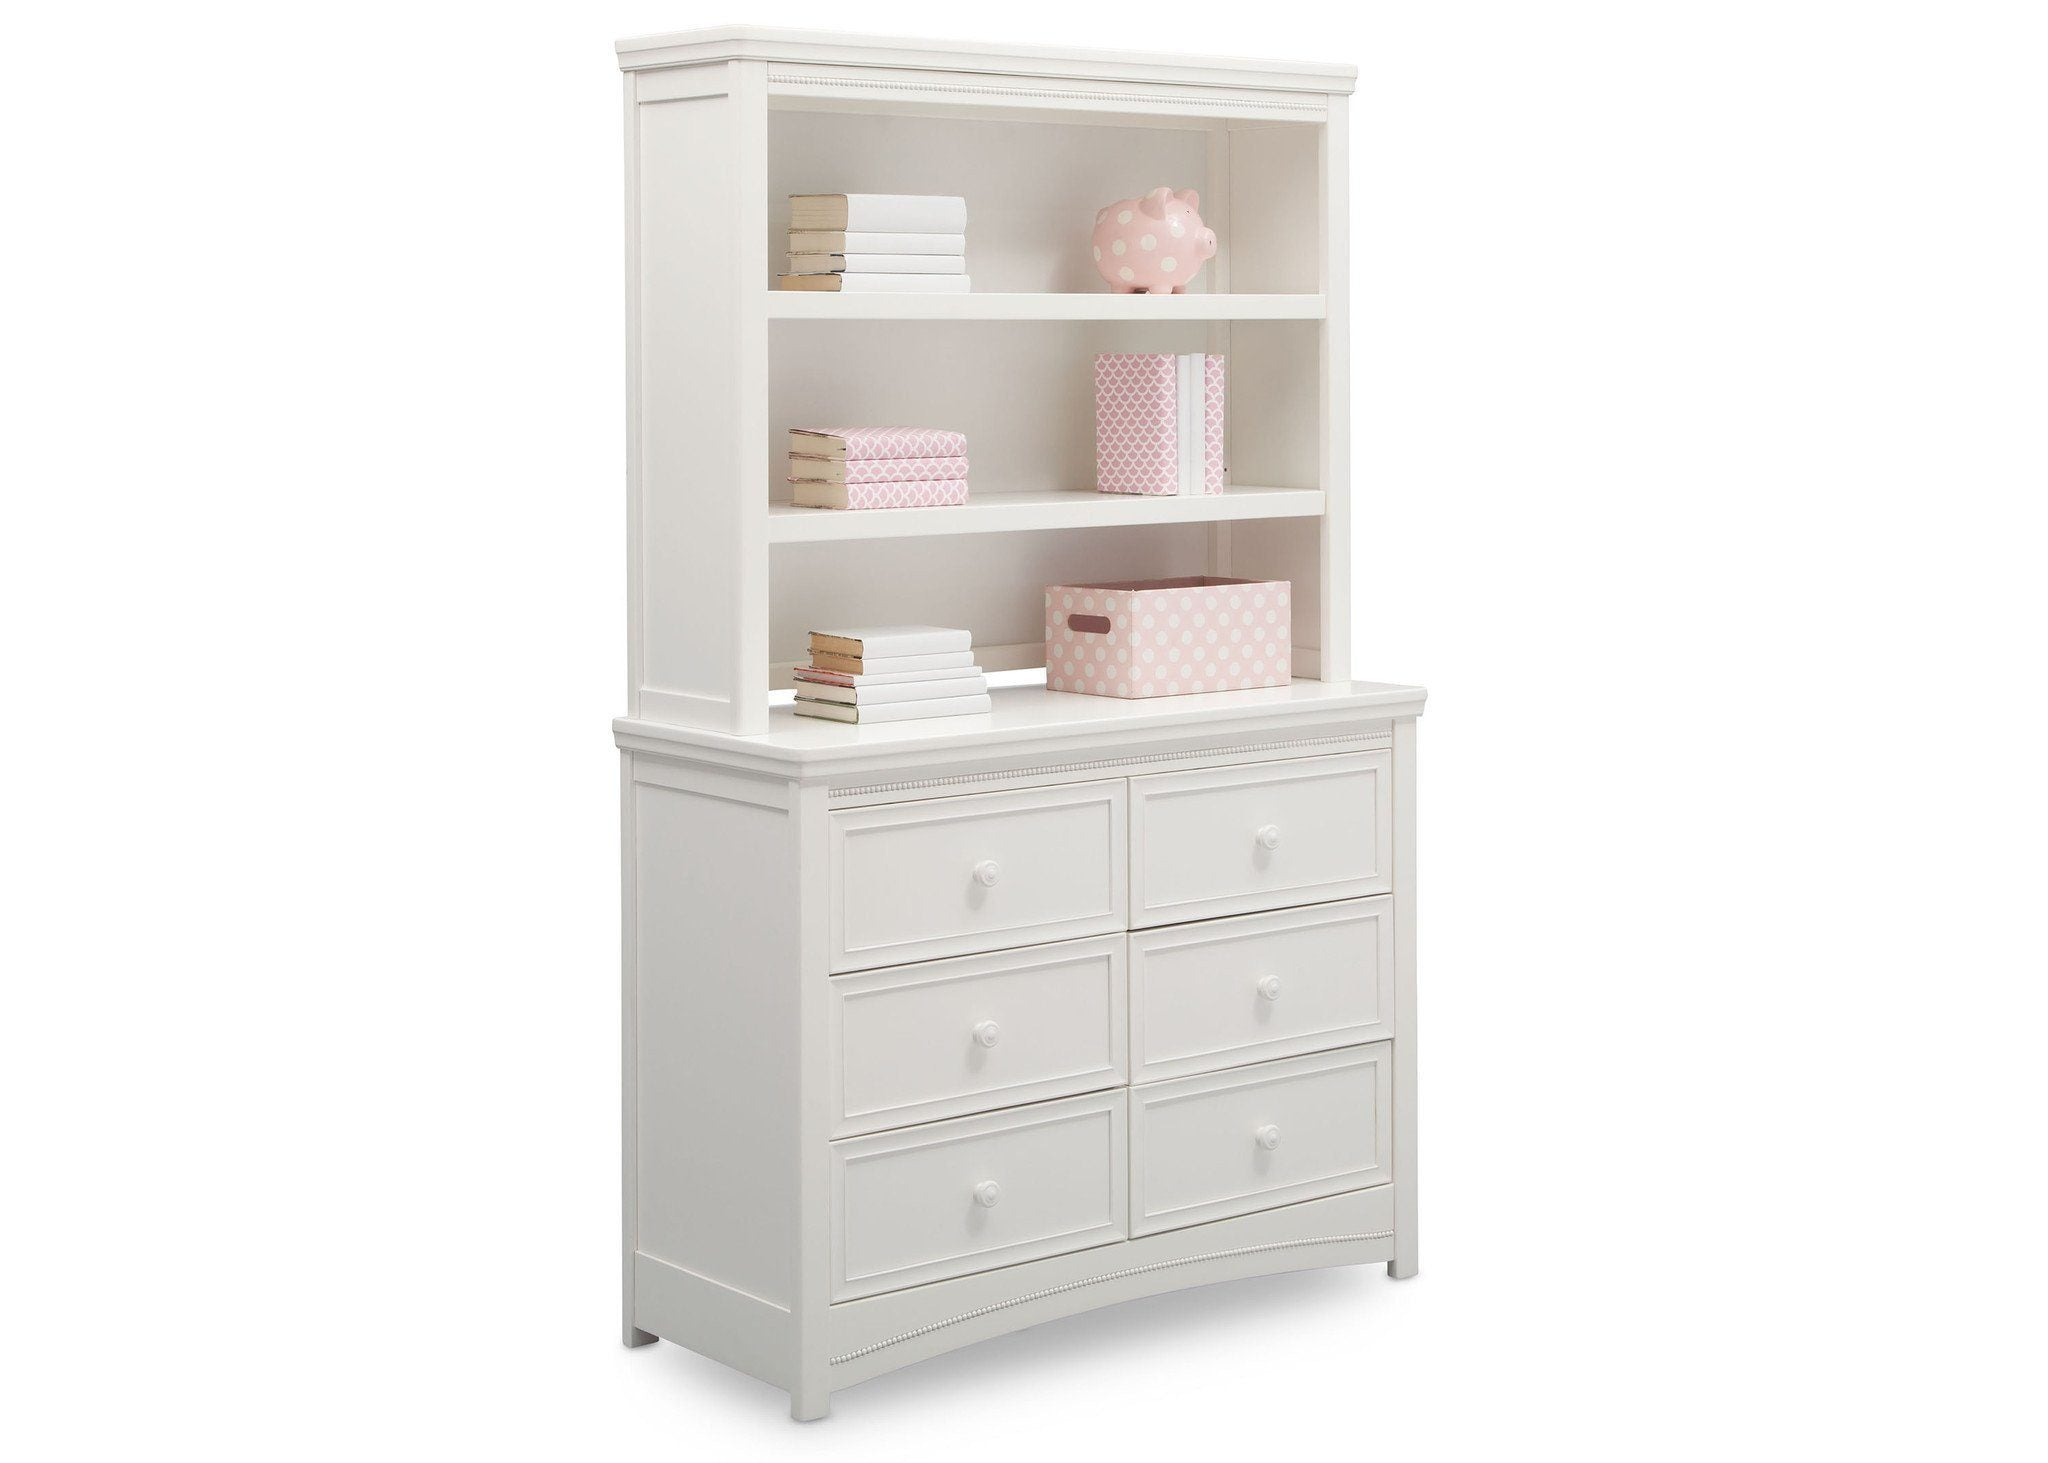 shipping hutch garden product bookcases shelf premium white overstock today home closetmaid free bookcase